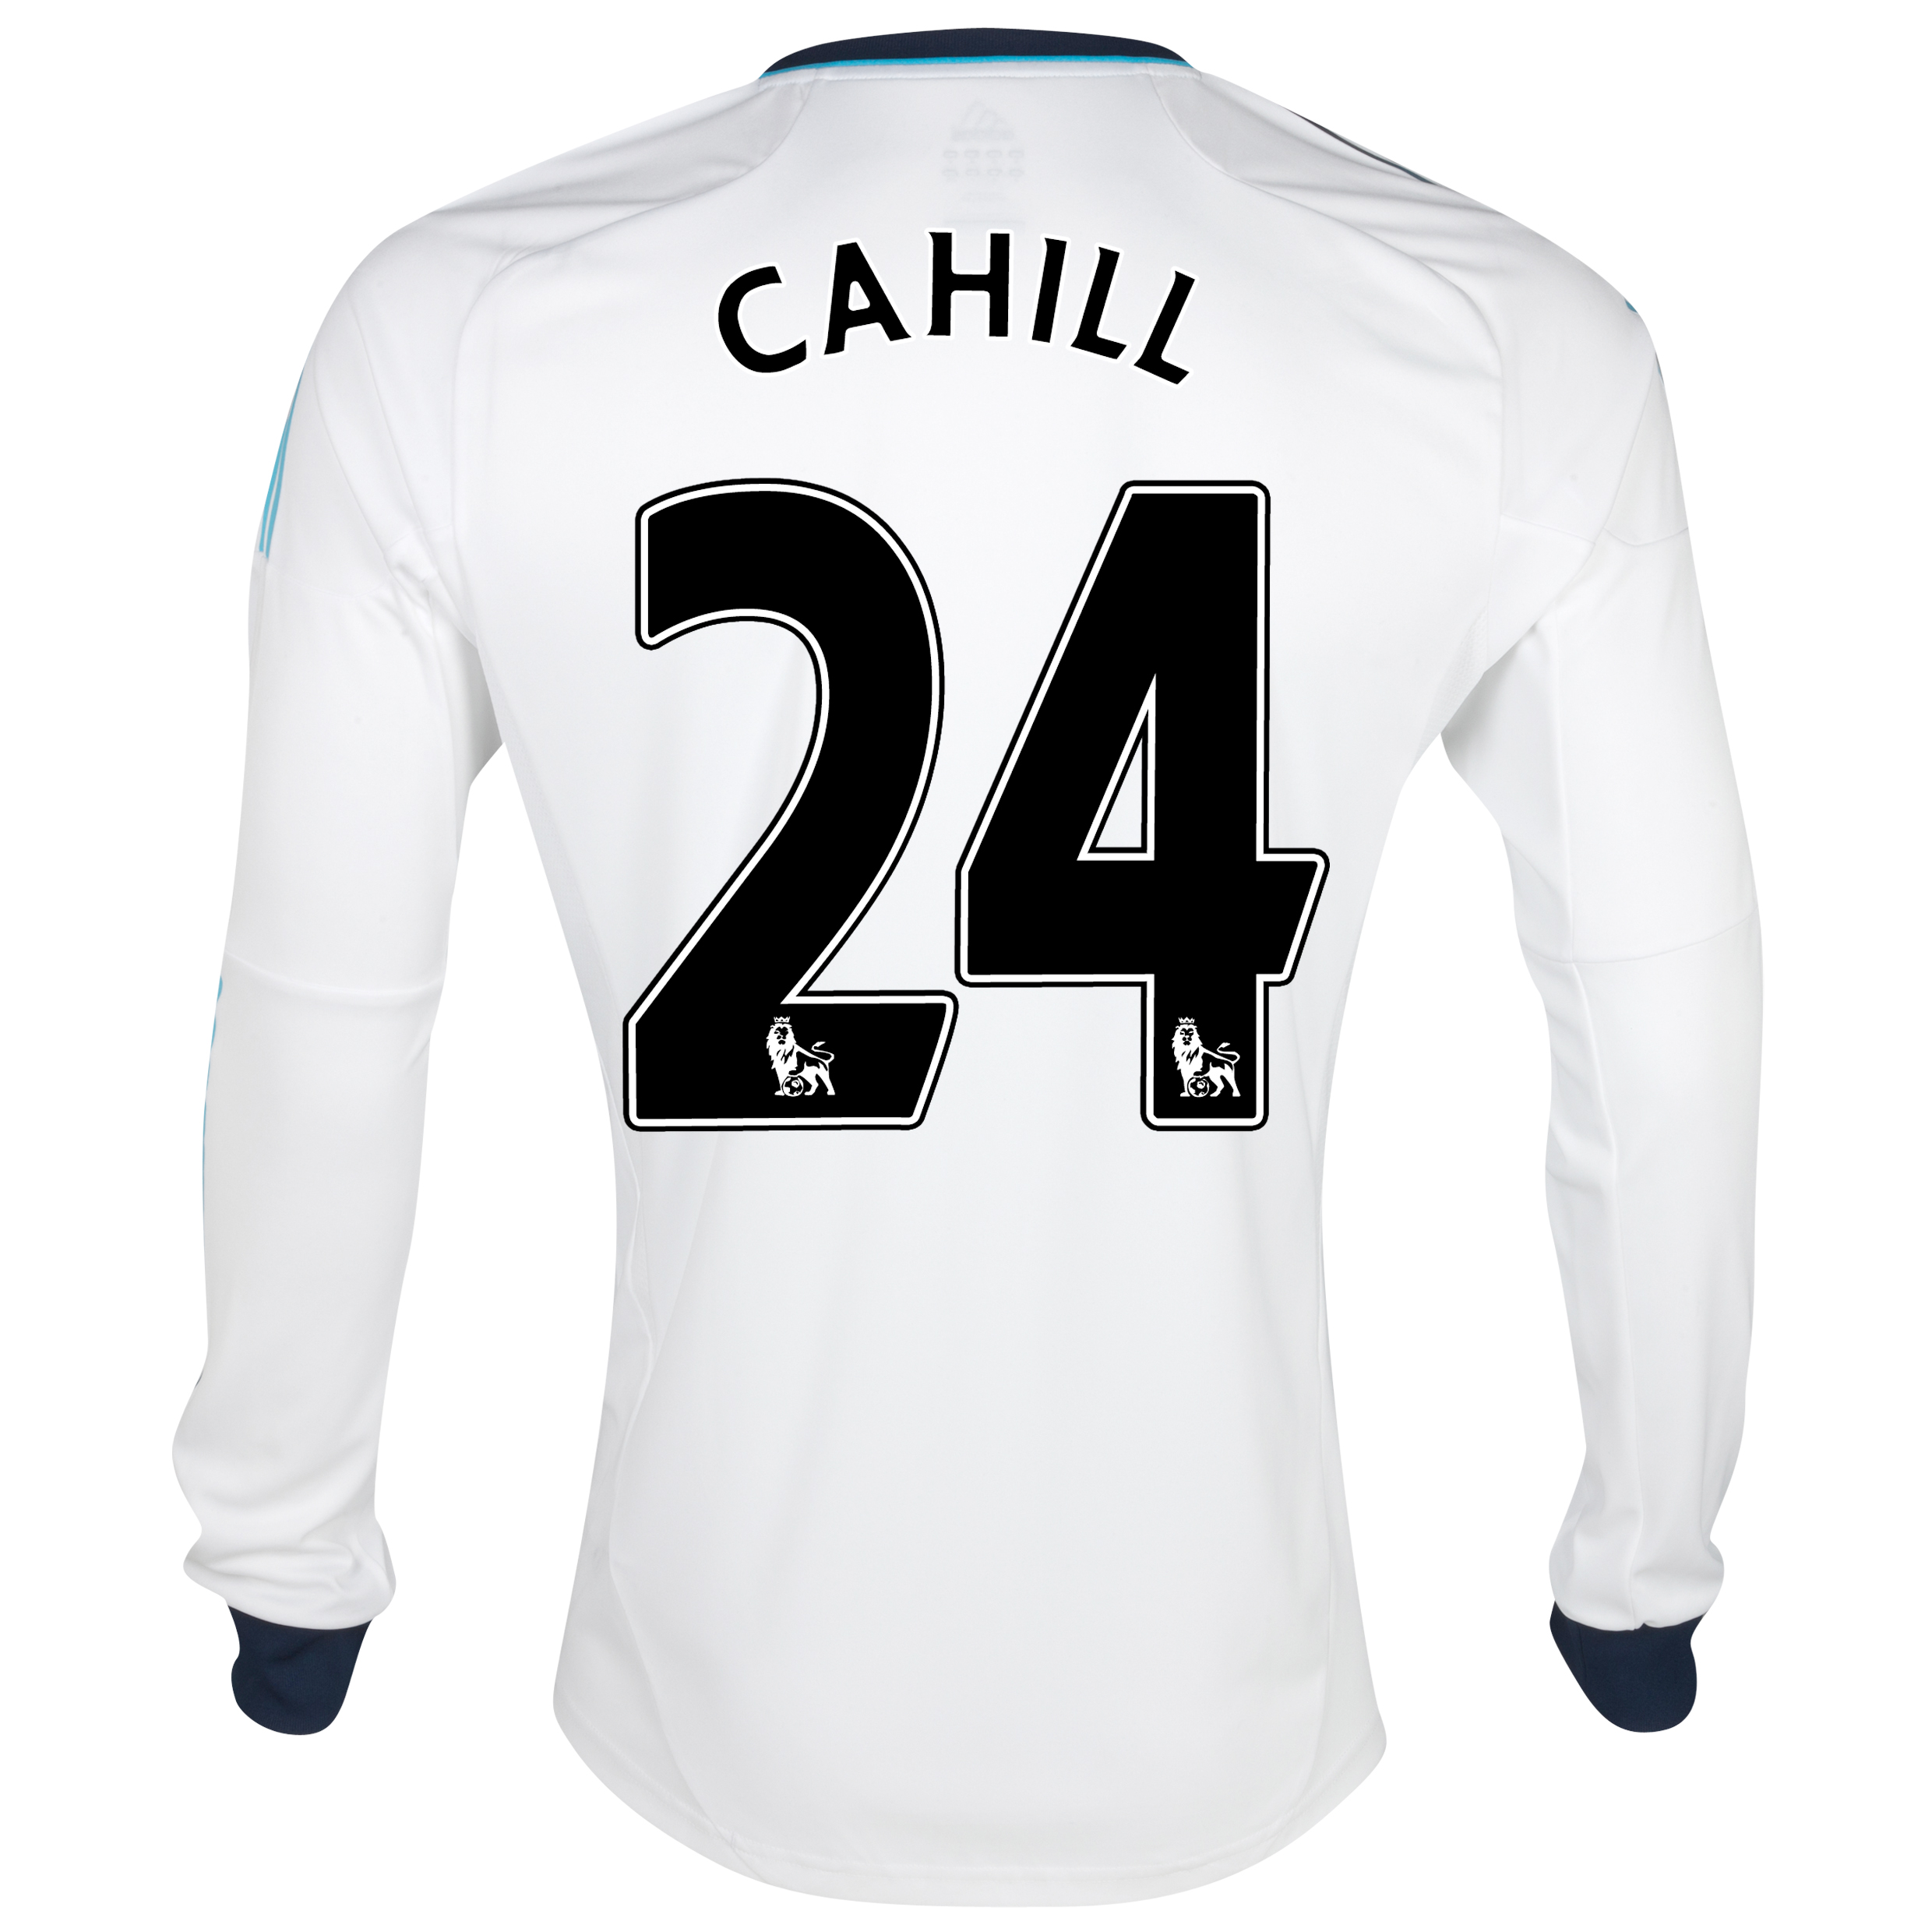 Chelsea Away Shirt 2012/13 - Long Sleeved with Cahill 24 printing